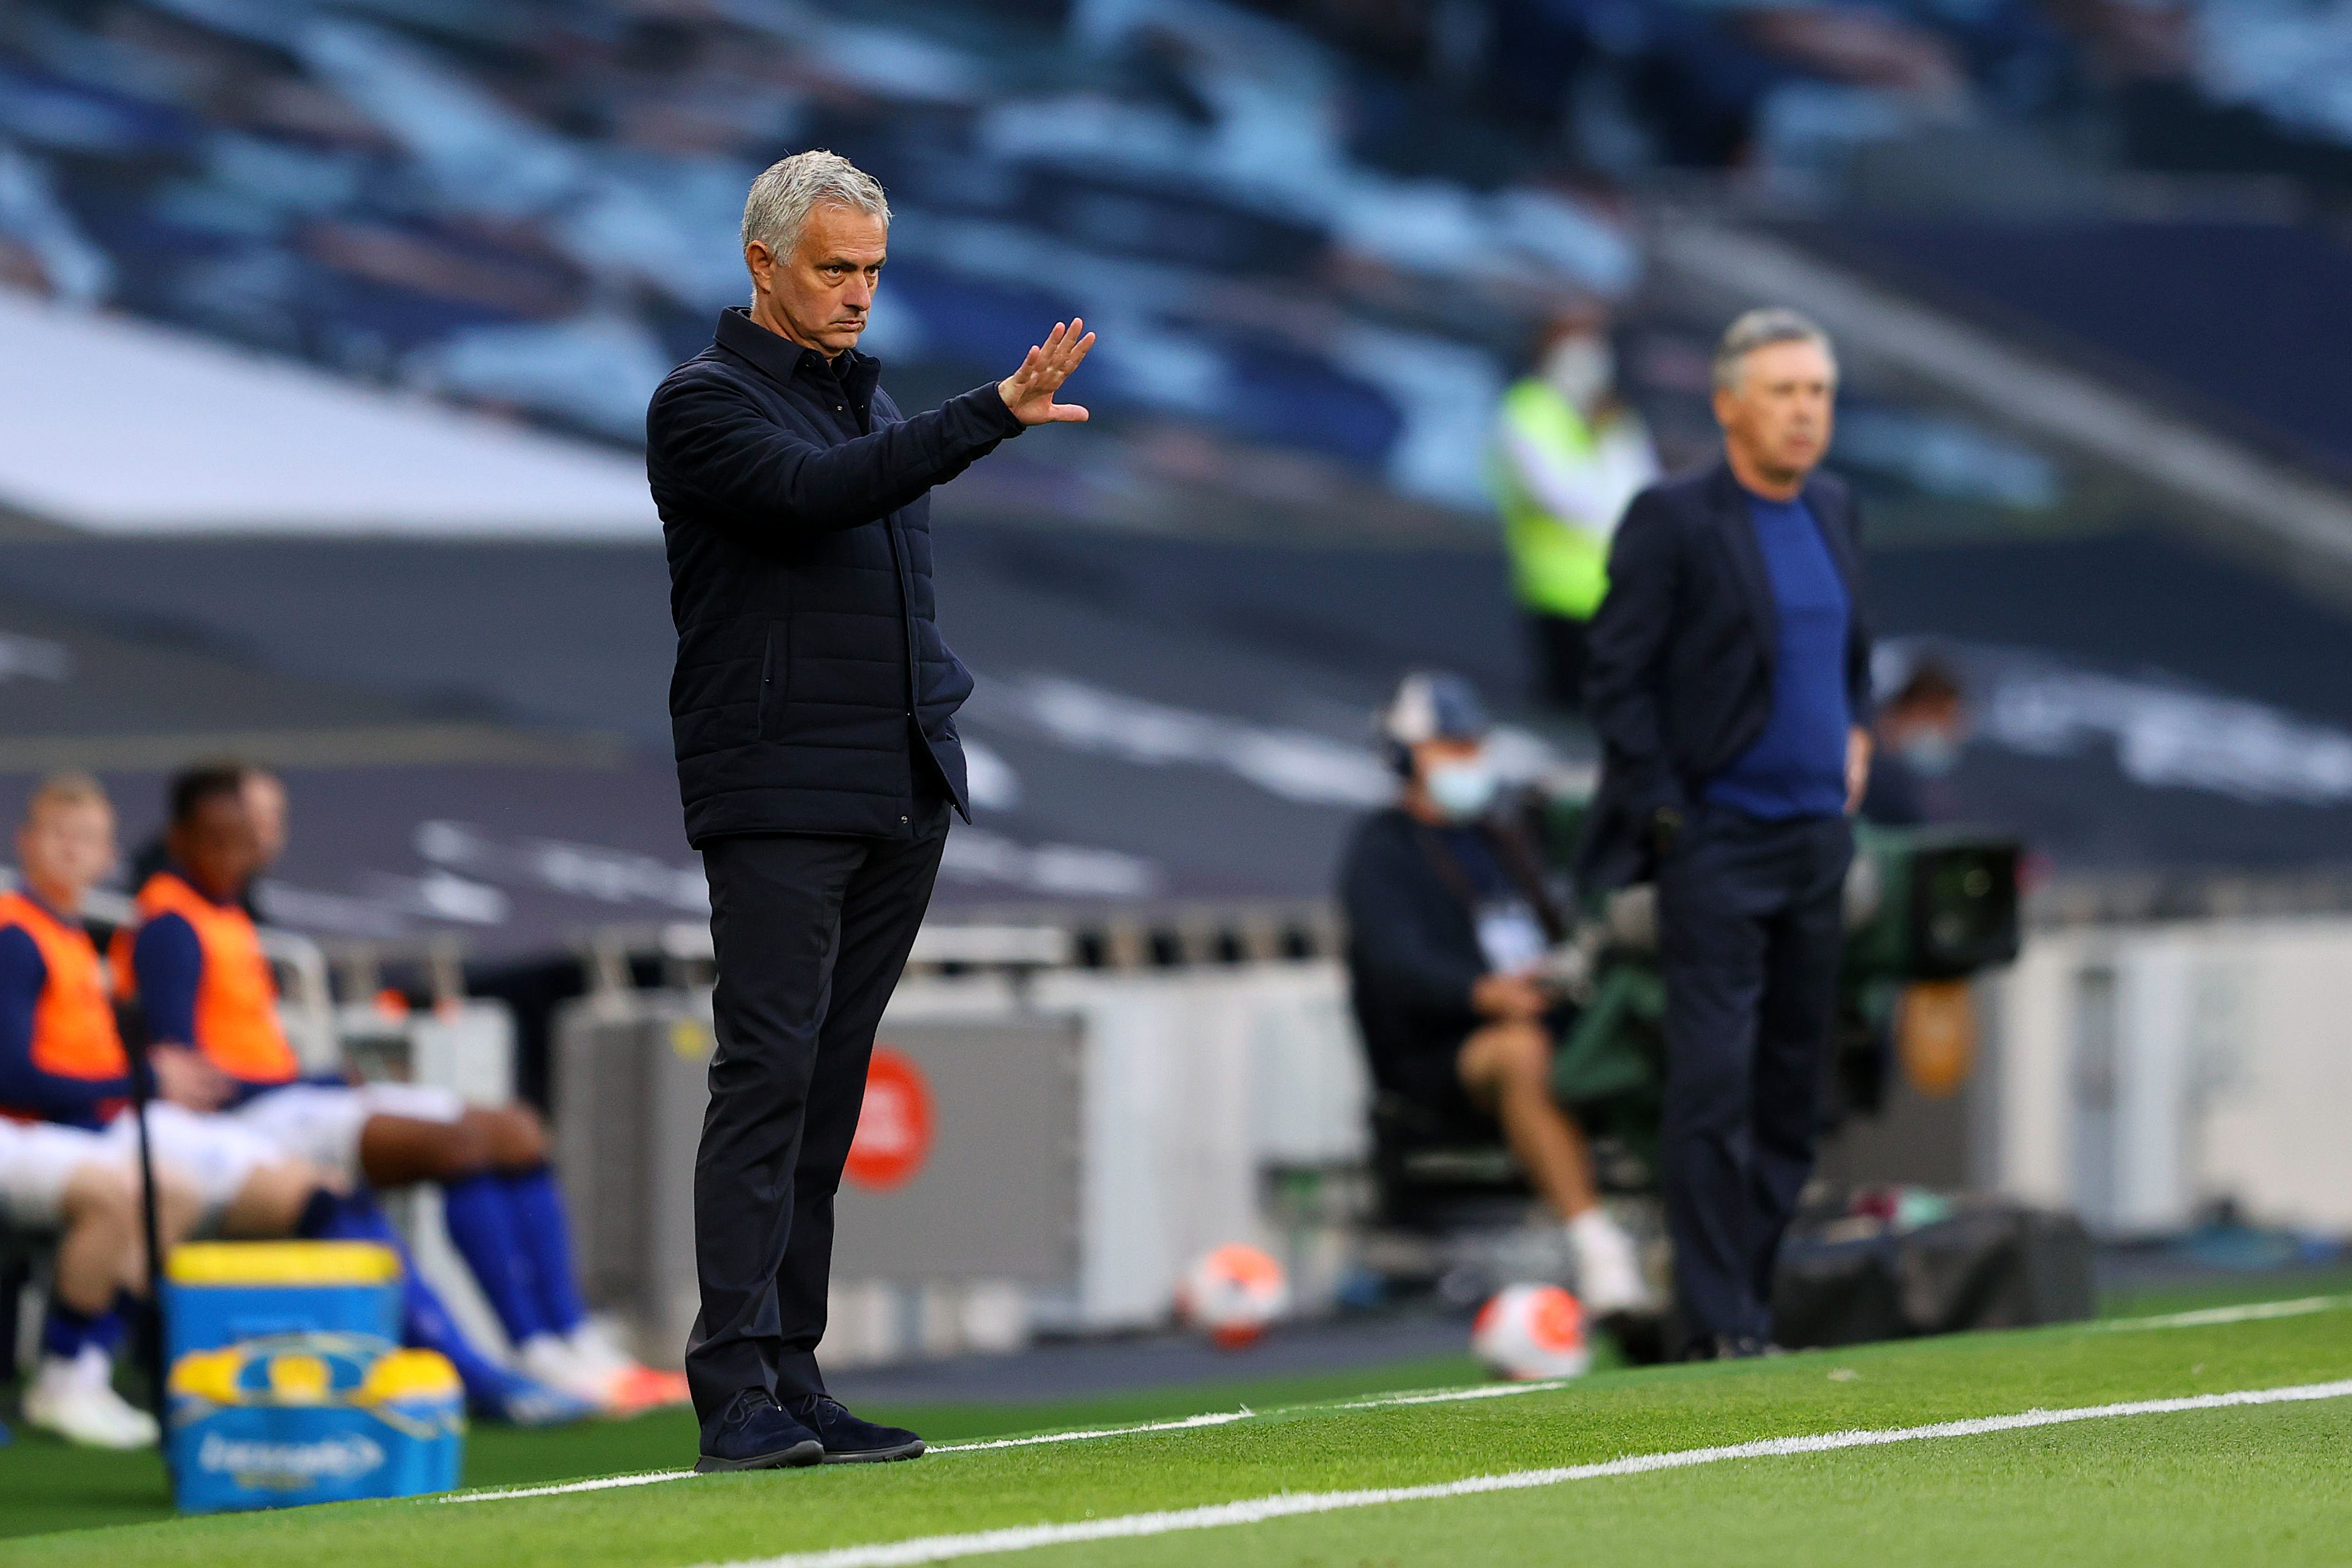 Jose Mourinho second to only Sir Alex Ferguson as he records 200th Premier League win with Tottenham's defeat thumbnail